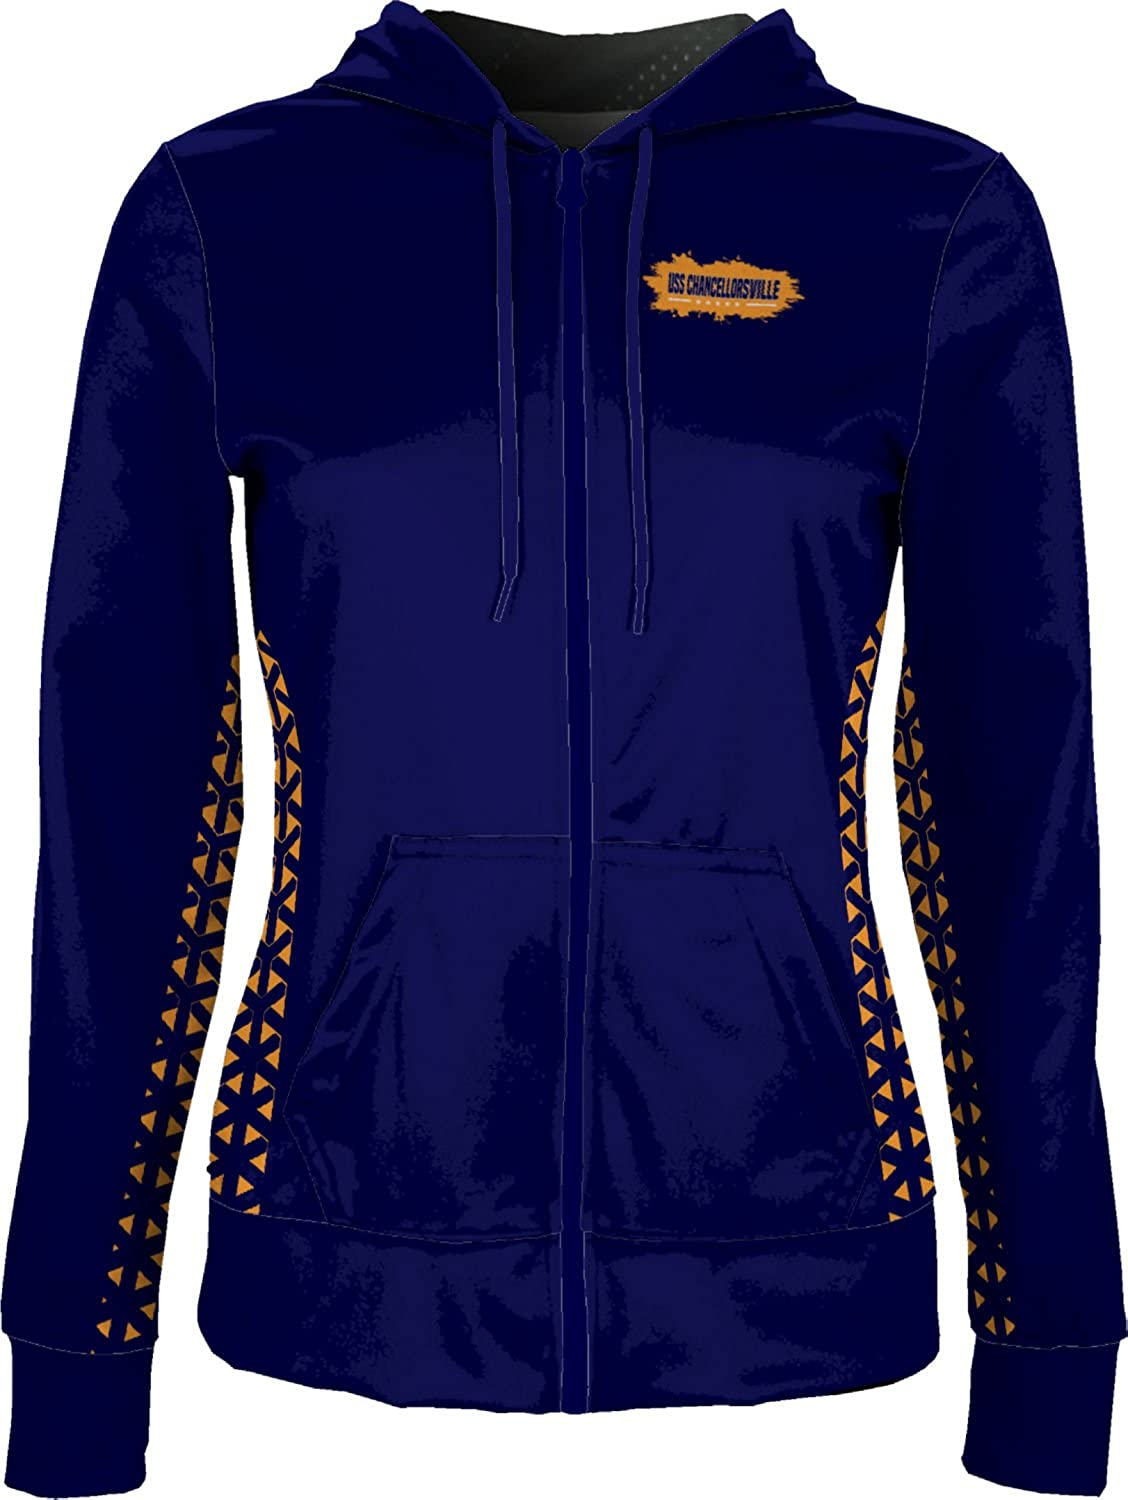 ProSphere Women's USS Chancellorsville Military Geometric Fullzip Hoodie